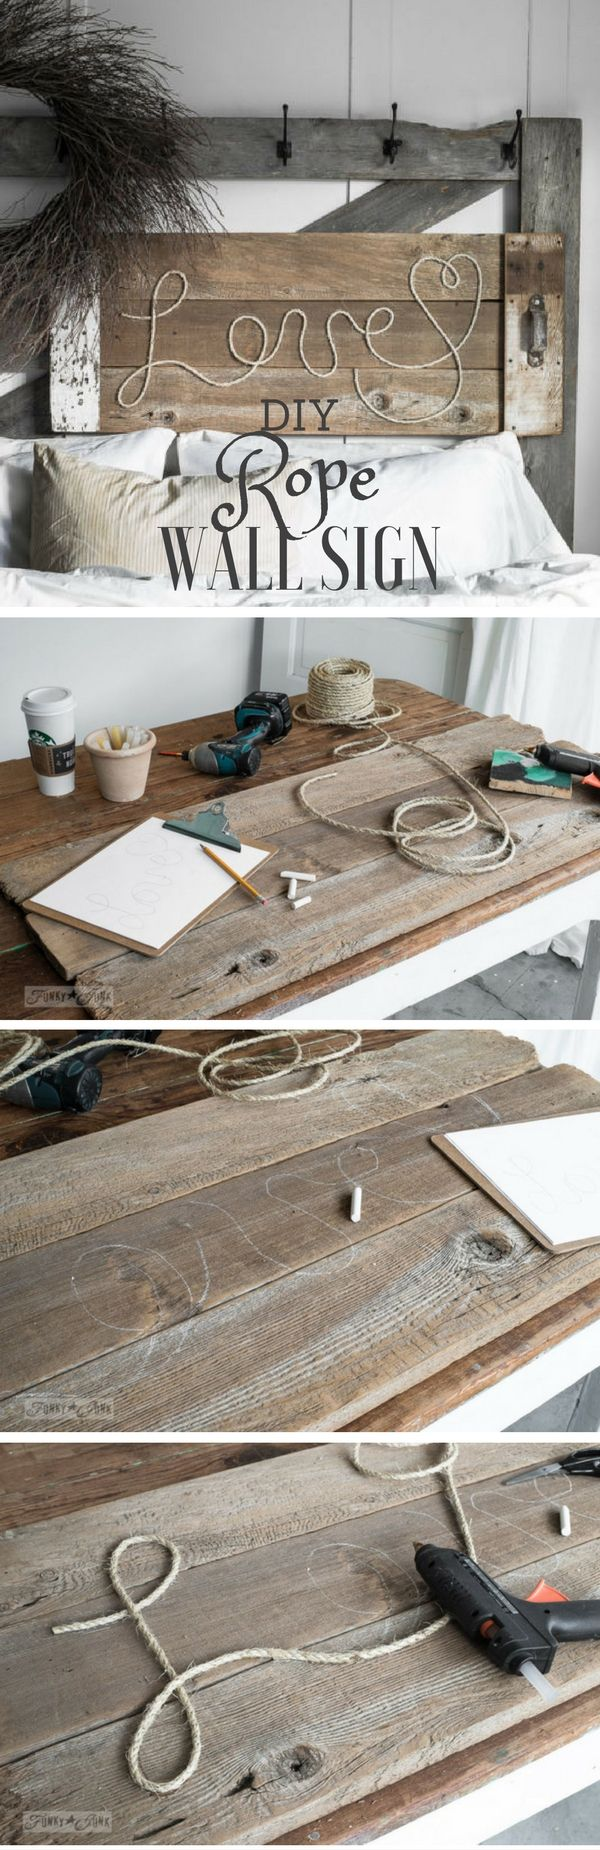 Check out the tutorial: #DIY Rustic Rope Wall Sign @istandarddesign